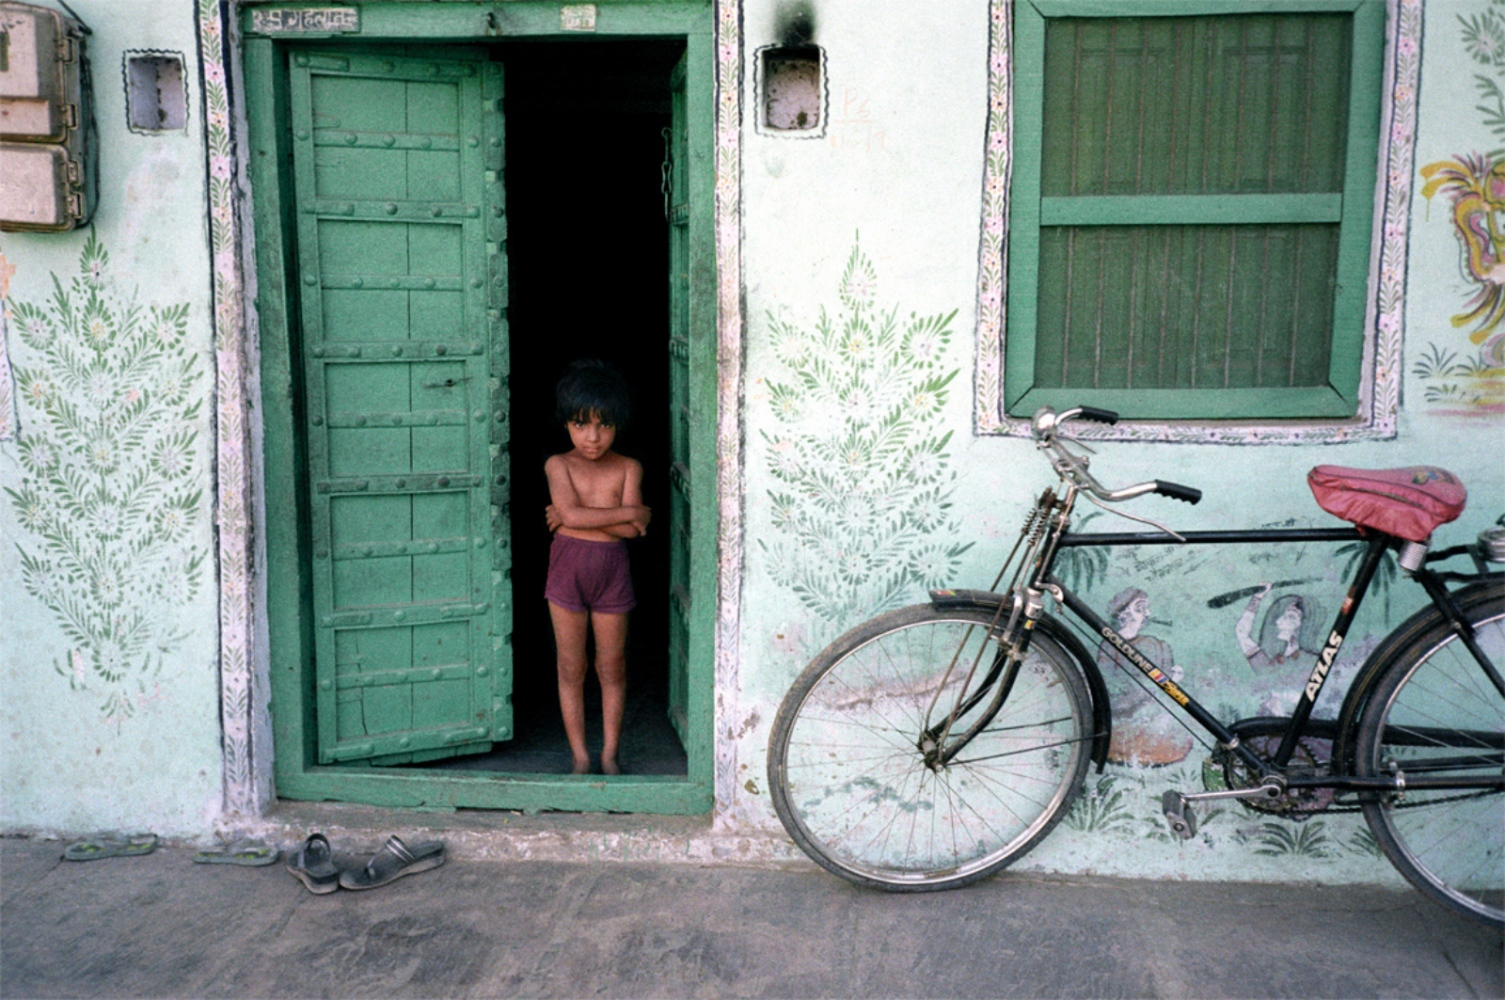 Boy and Bicycle, Pushkar, India, November 2003